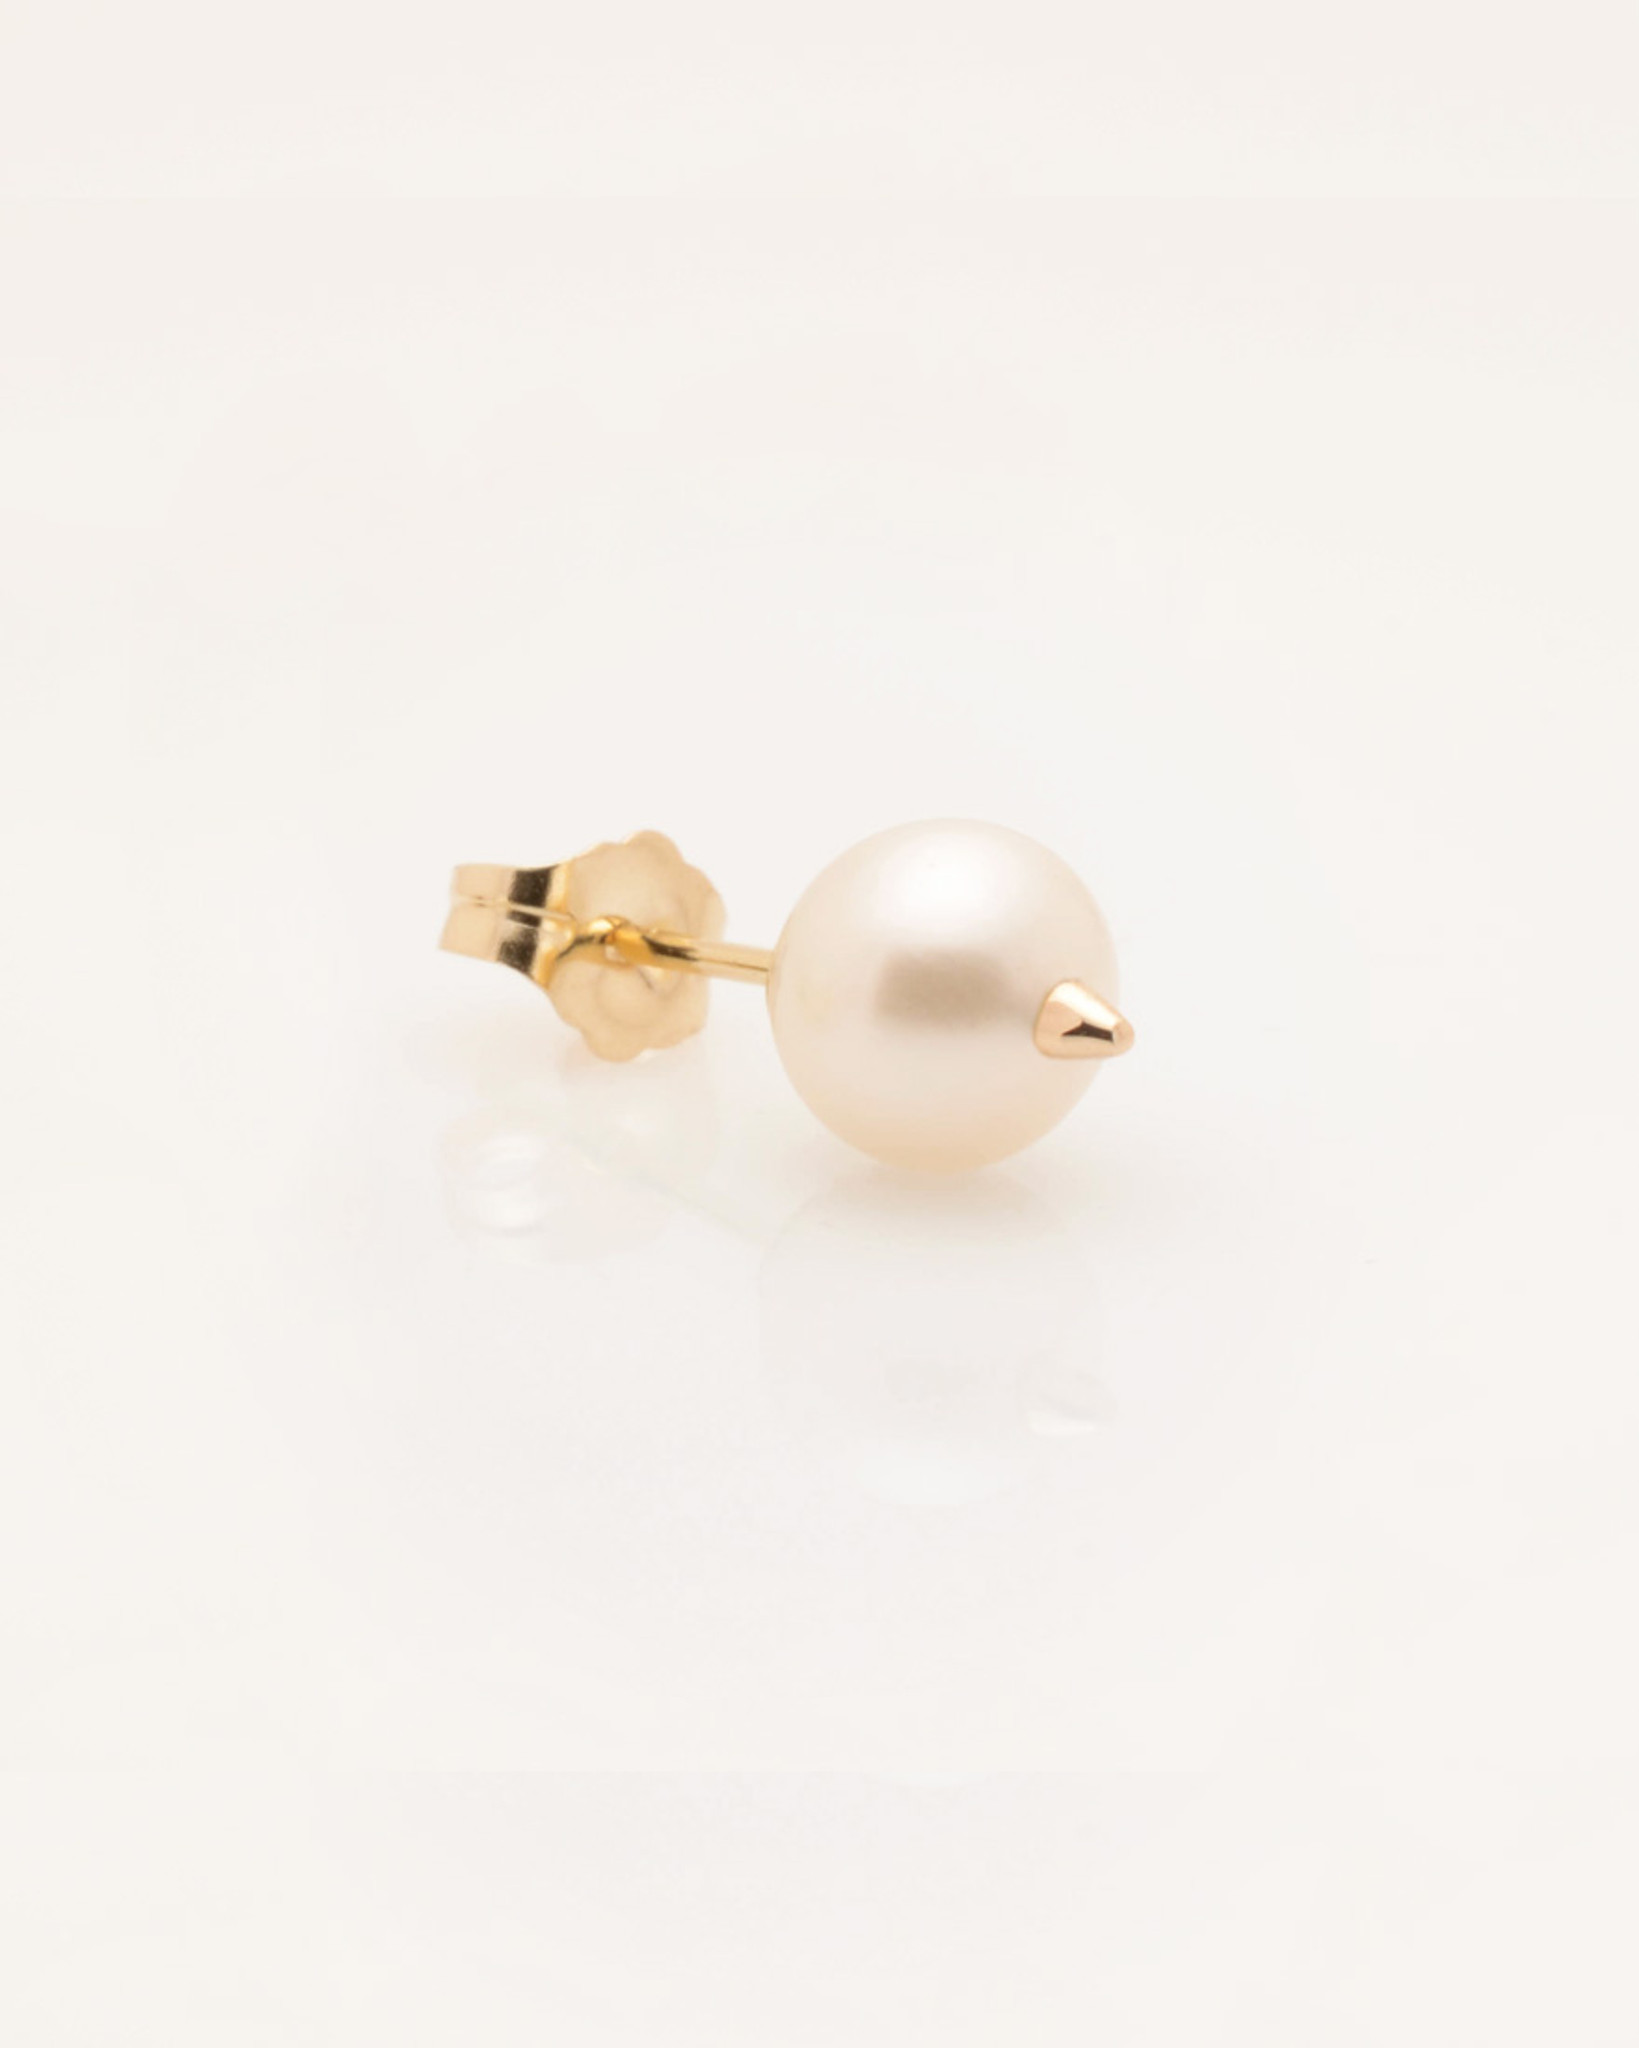 Cultured Freshwater Pearl Earring with 14k Gold Spike and Post (6.5 mm)